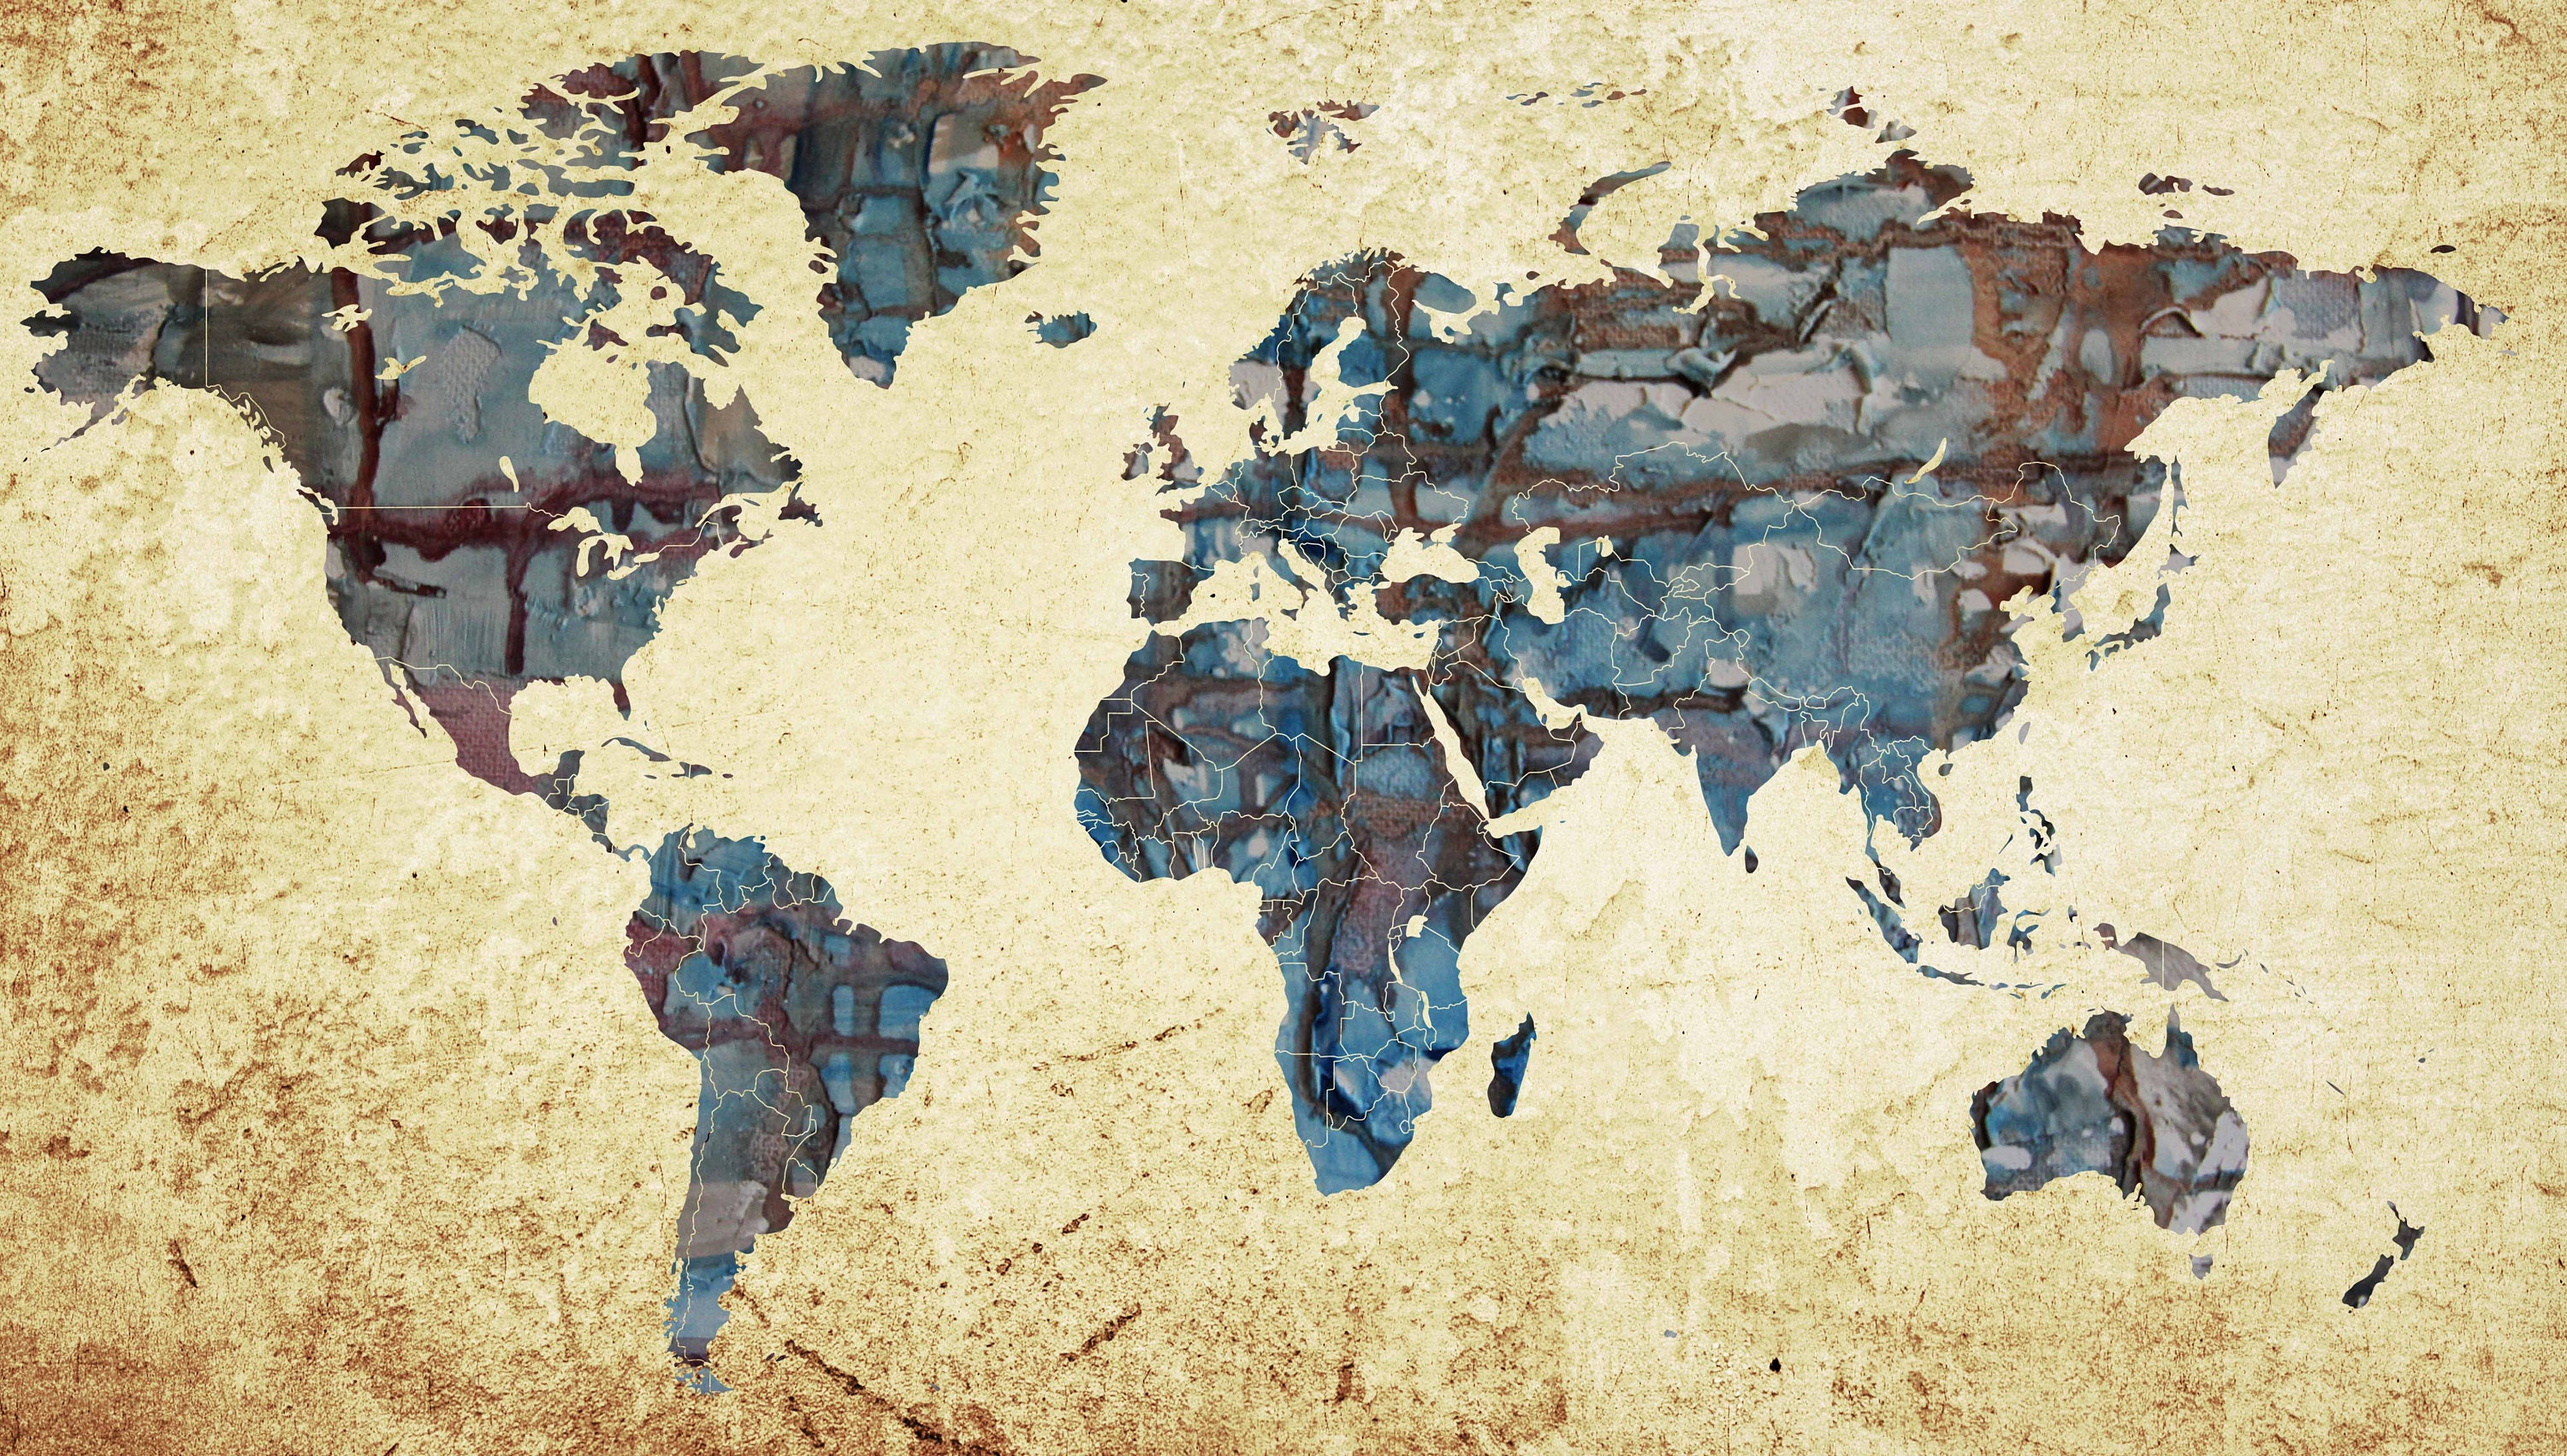 Large world mapworld map abstract map wall art world map painting large world mapworld map abstract map wall art world map paintingworld map printmap postermap canvaspush pinhand madedecorative art publicscrutiny Image collections